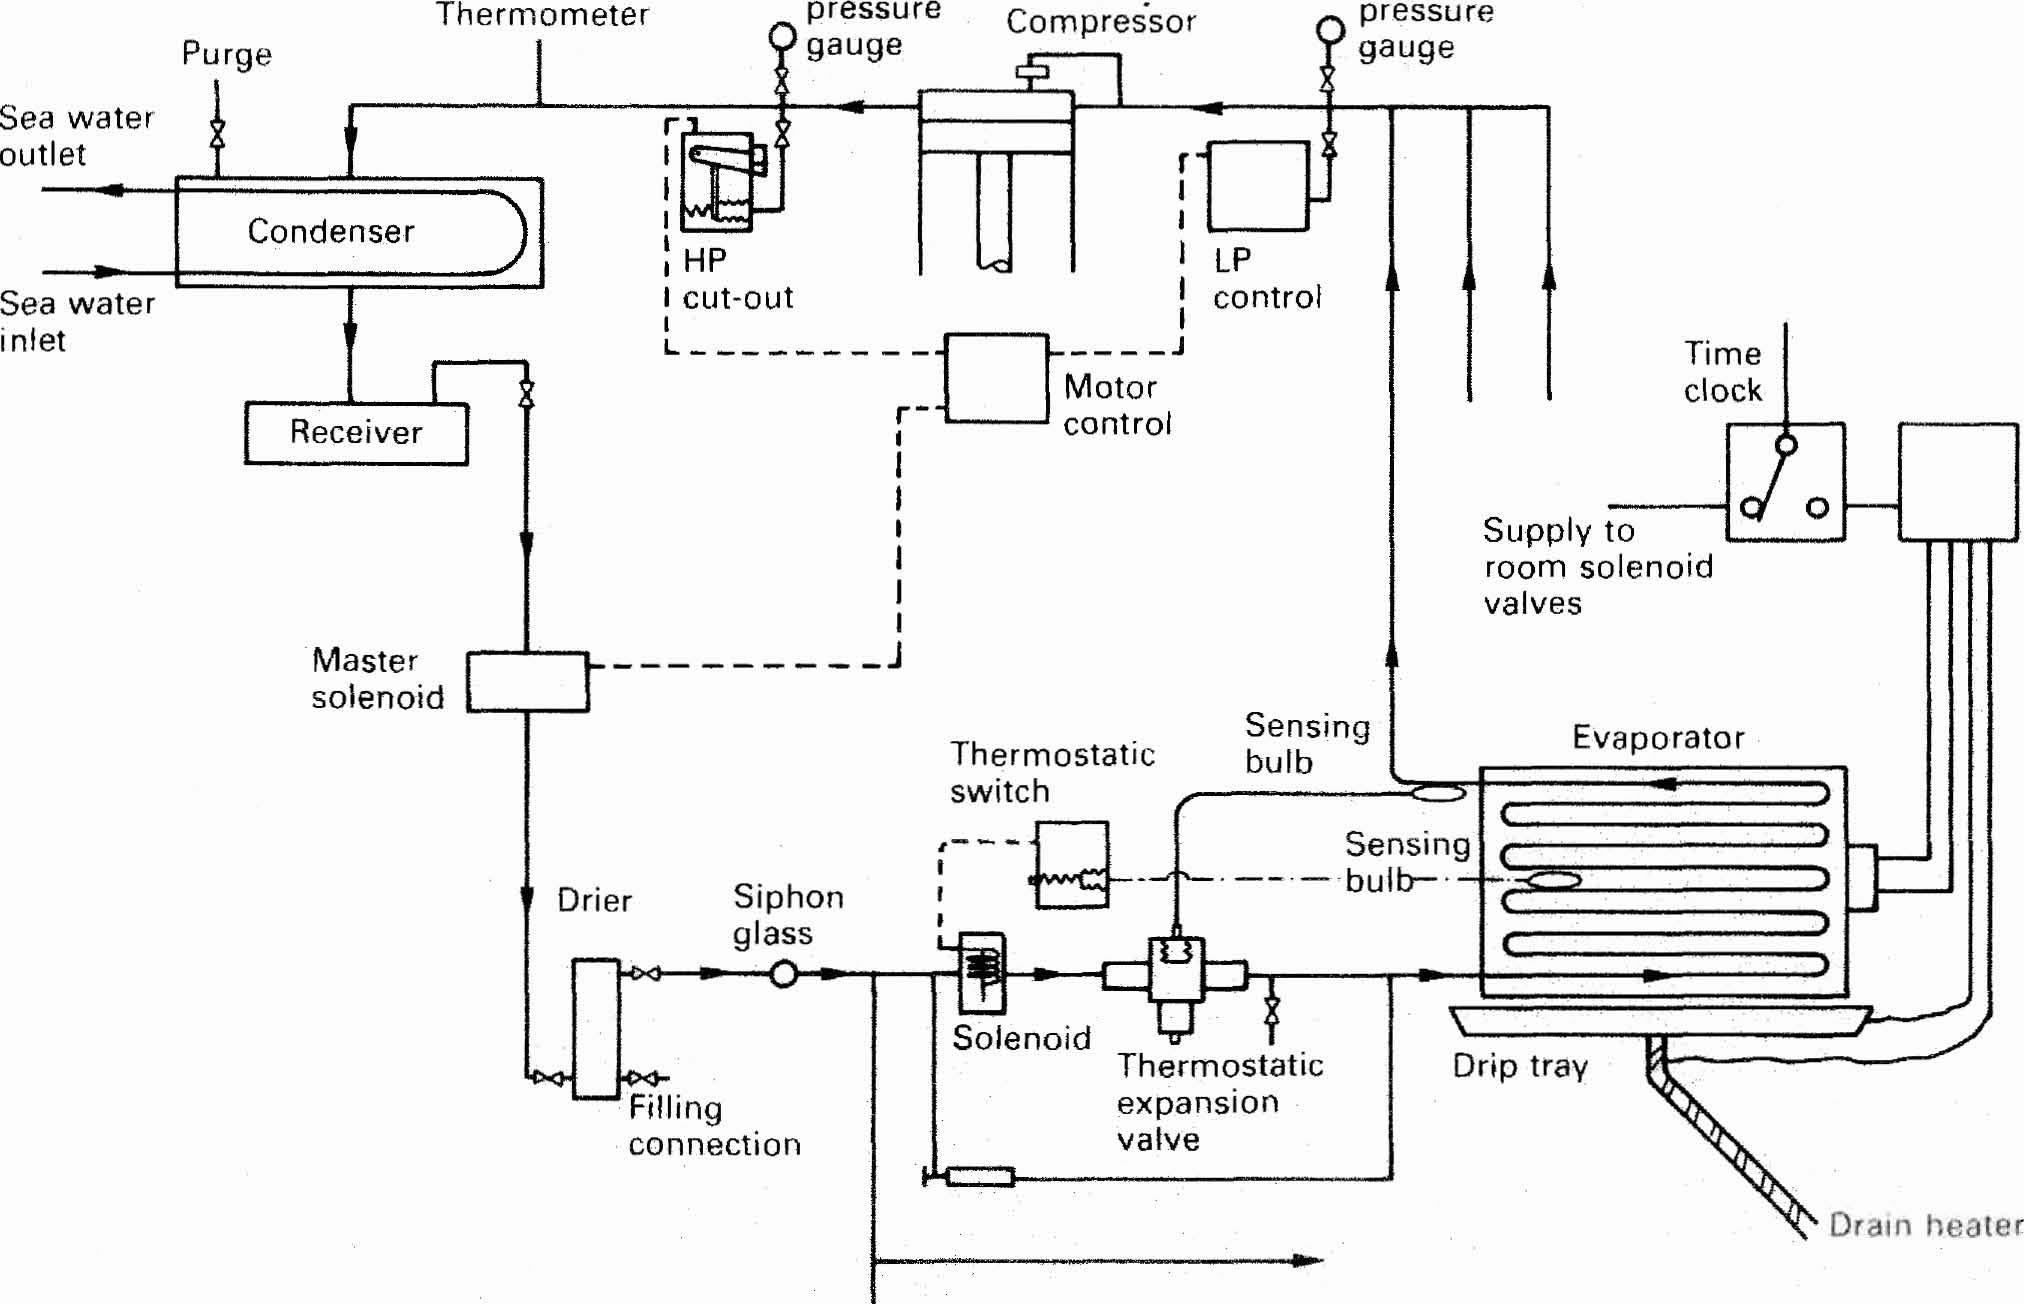 Bohn Chiller Diagram - Trusted Wiring Diagrams